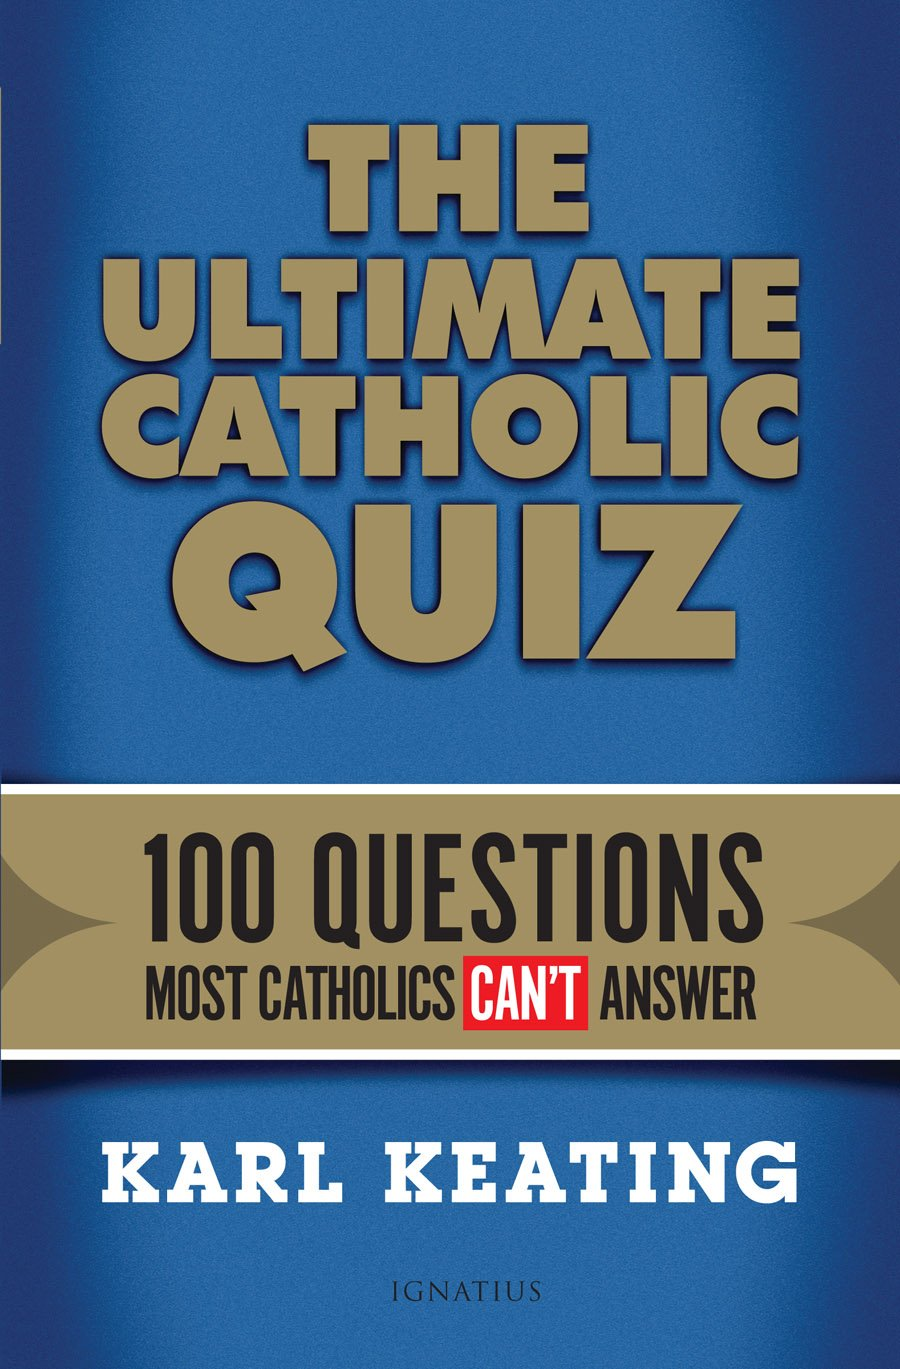 the ultimate catholic quiz 100 questions most catholics can t the ultimate catholic quiz 100 questions most catholics can t answer karl keating 9781621640240 amazon com books